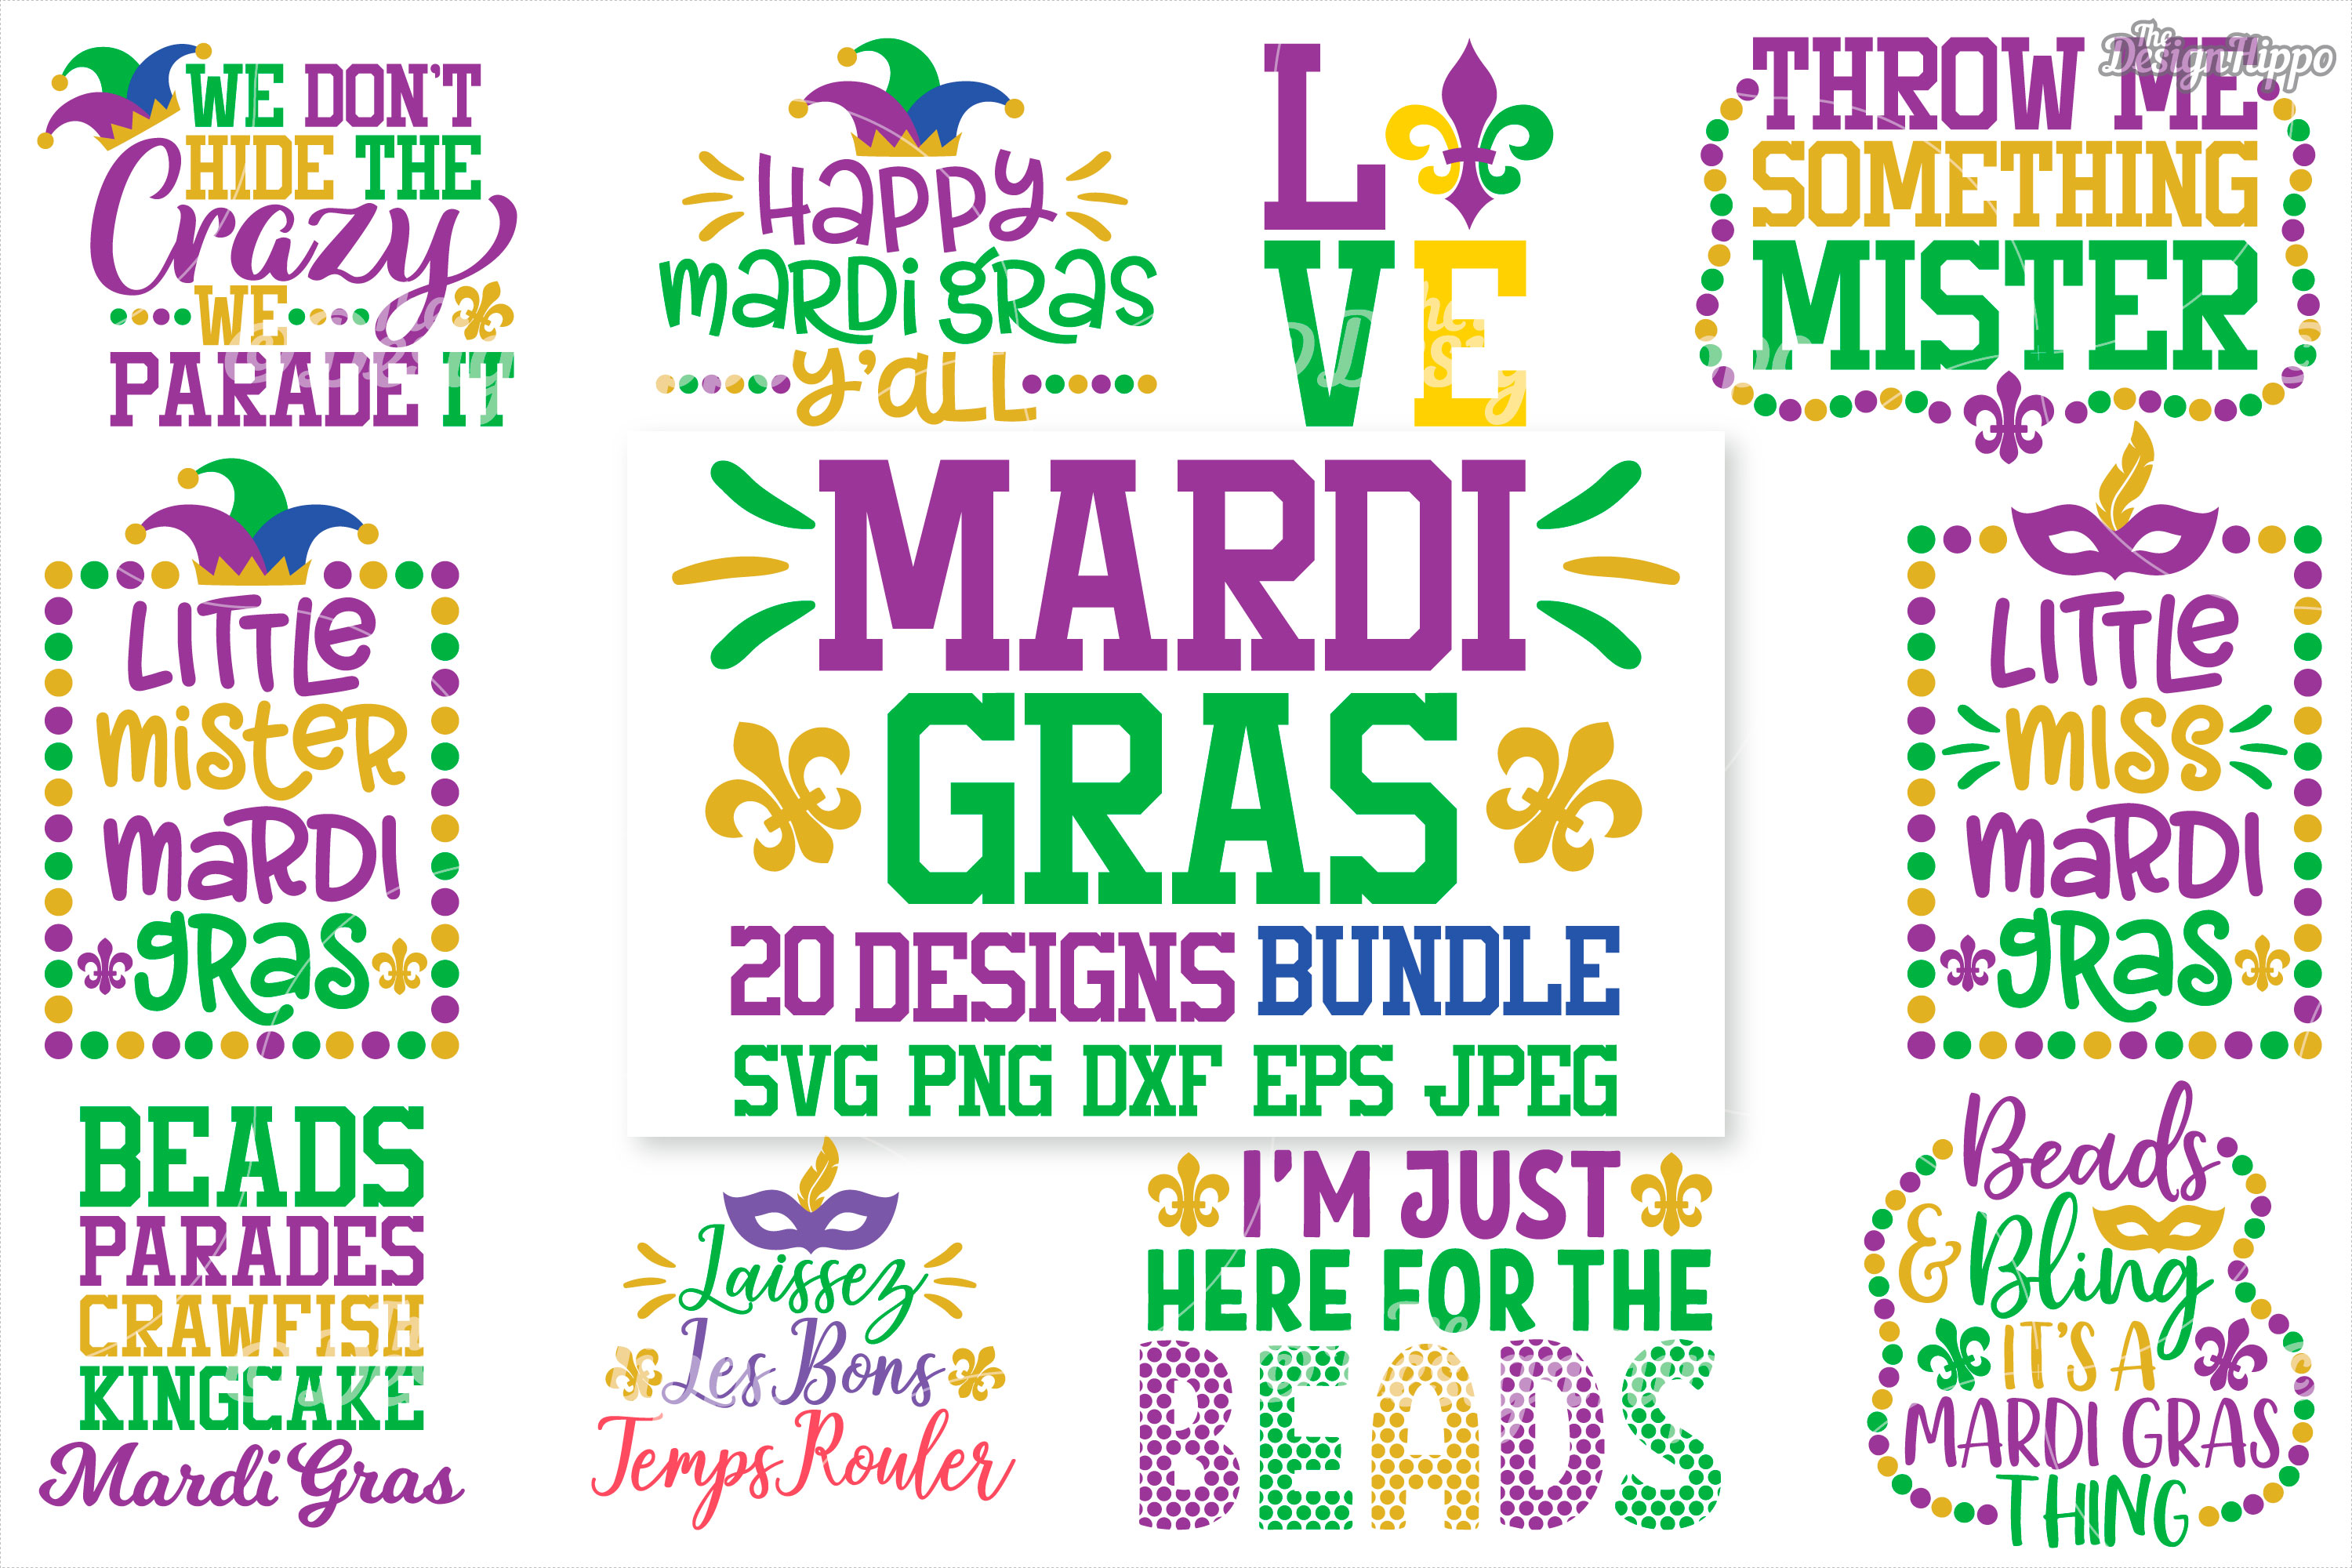 Mardi Gras SVG Bundle of 20 Designs, DXF, PNG, Cutting Files example image 1